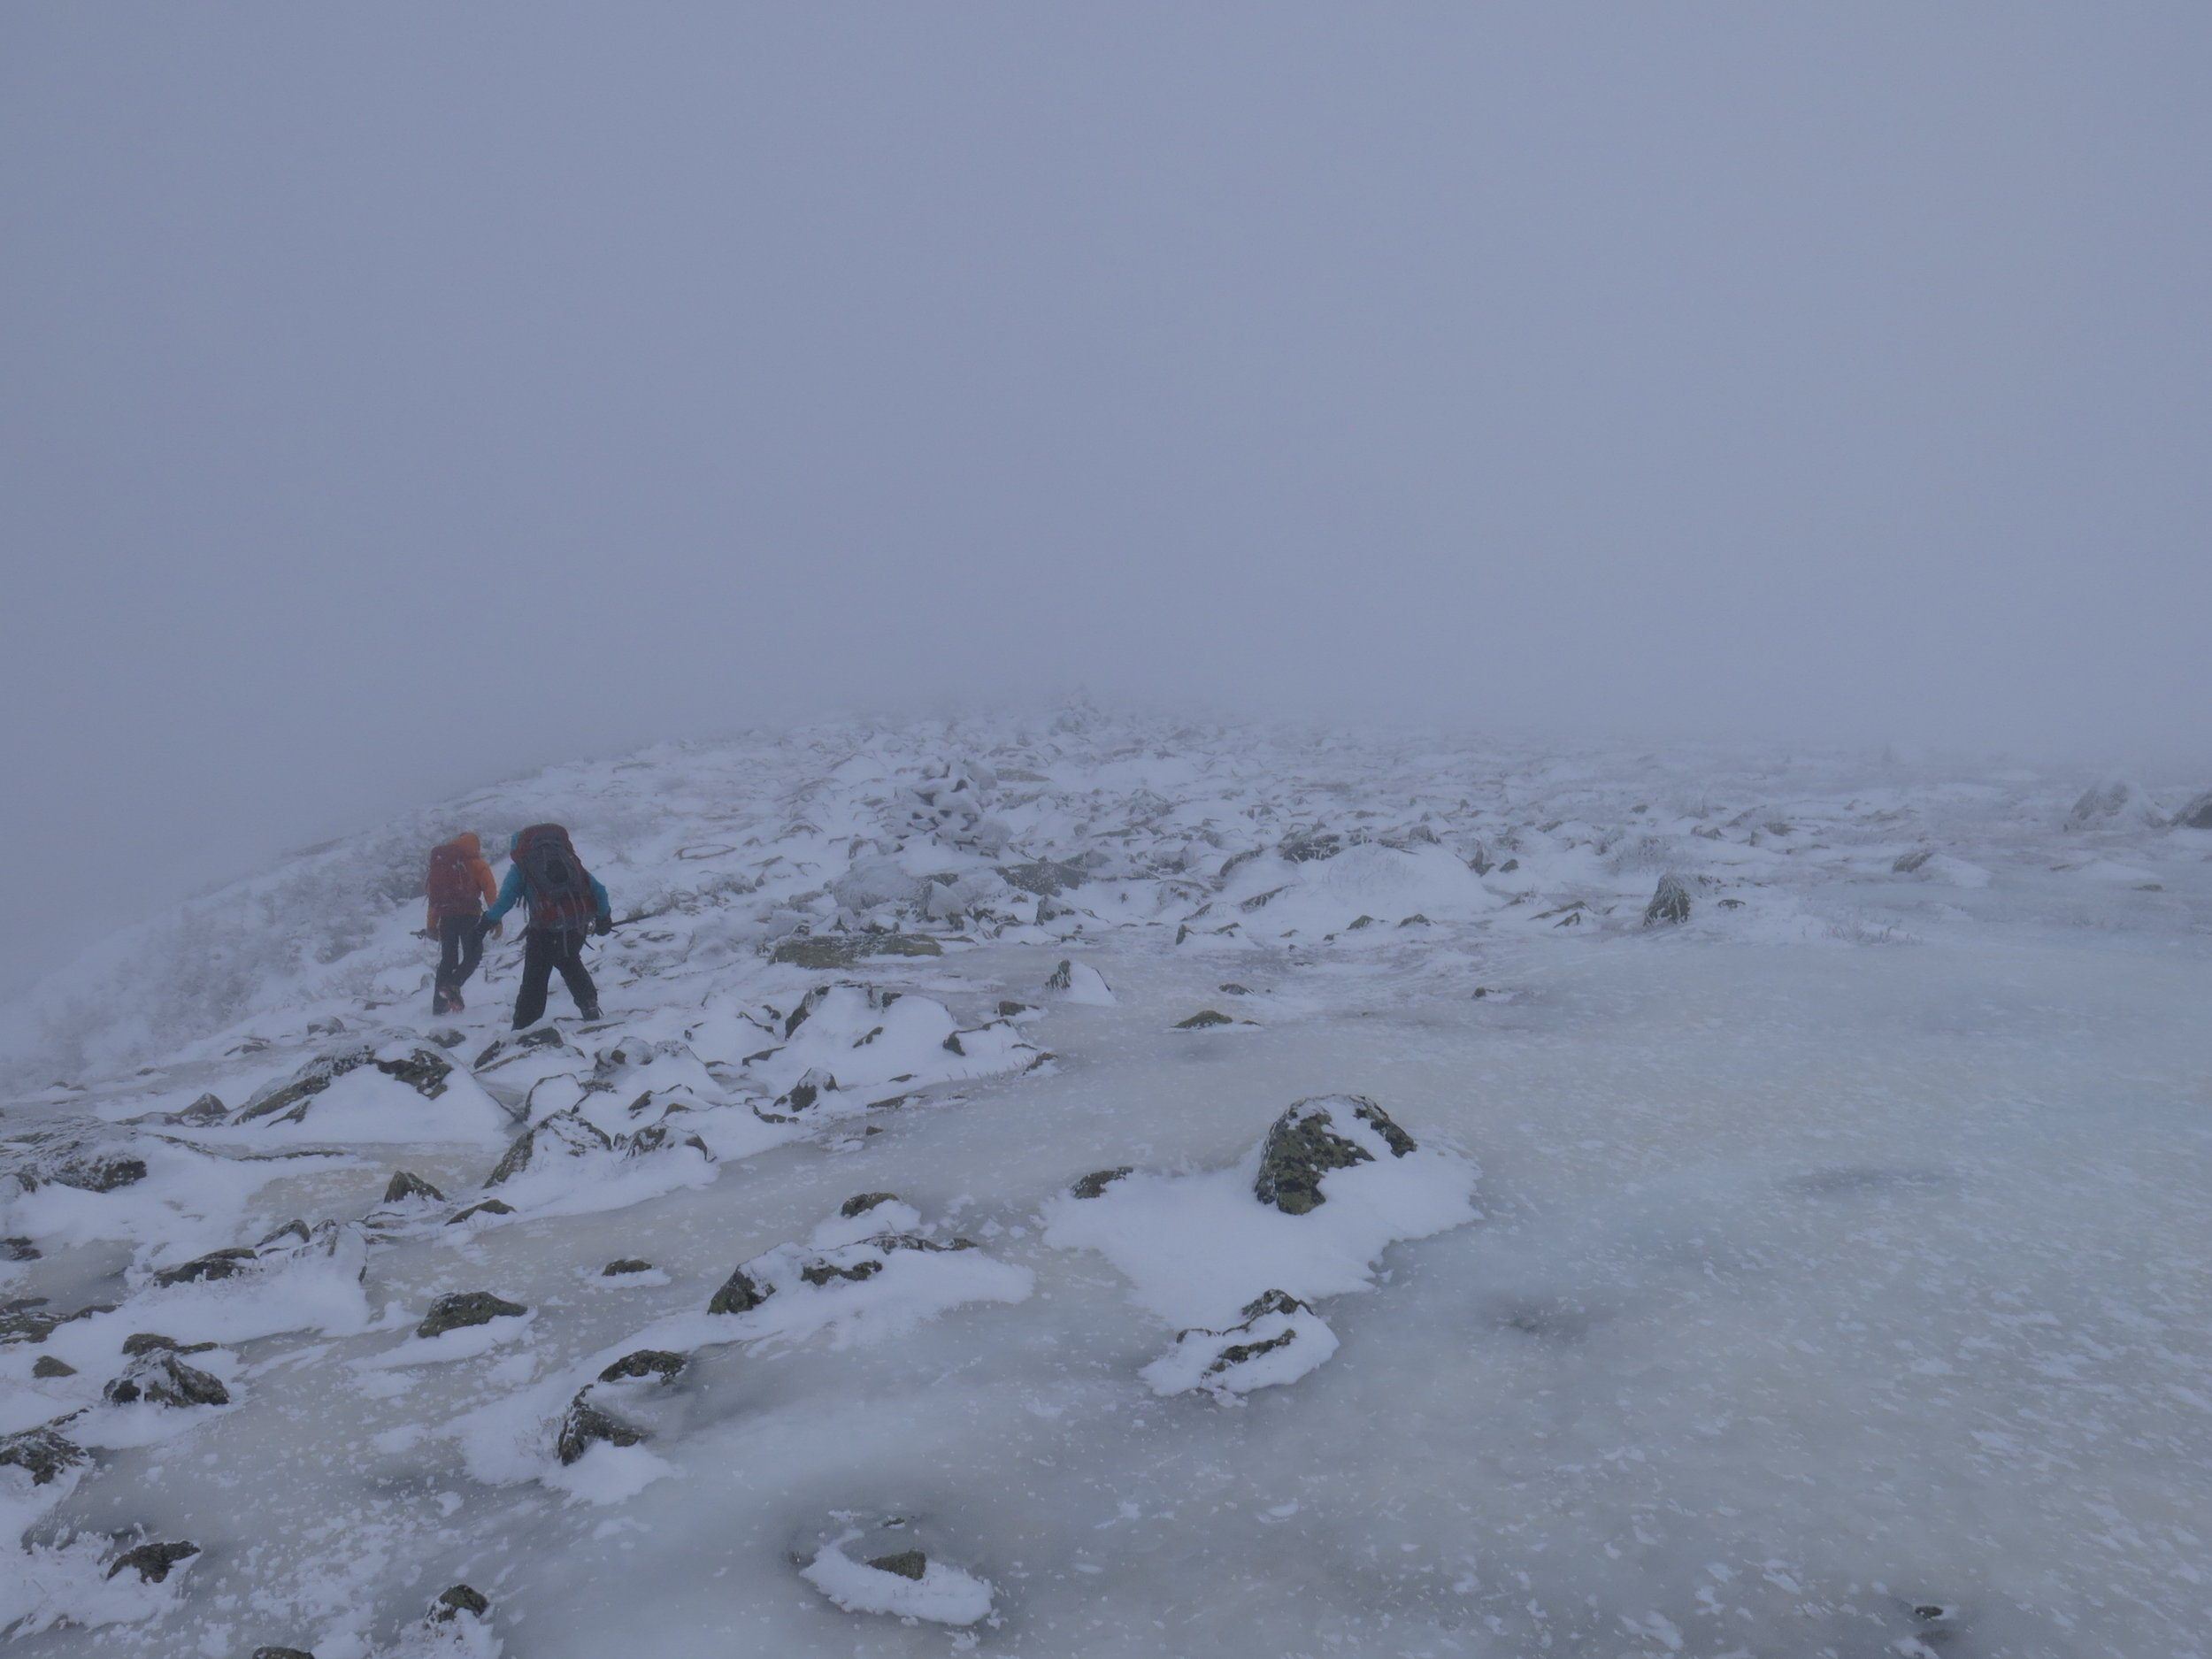 In austere environments like Mt Washington, support and kindness go a long way toward survival.